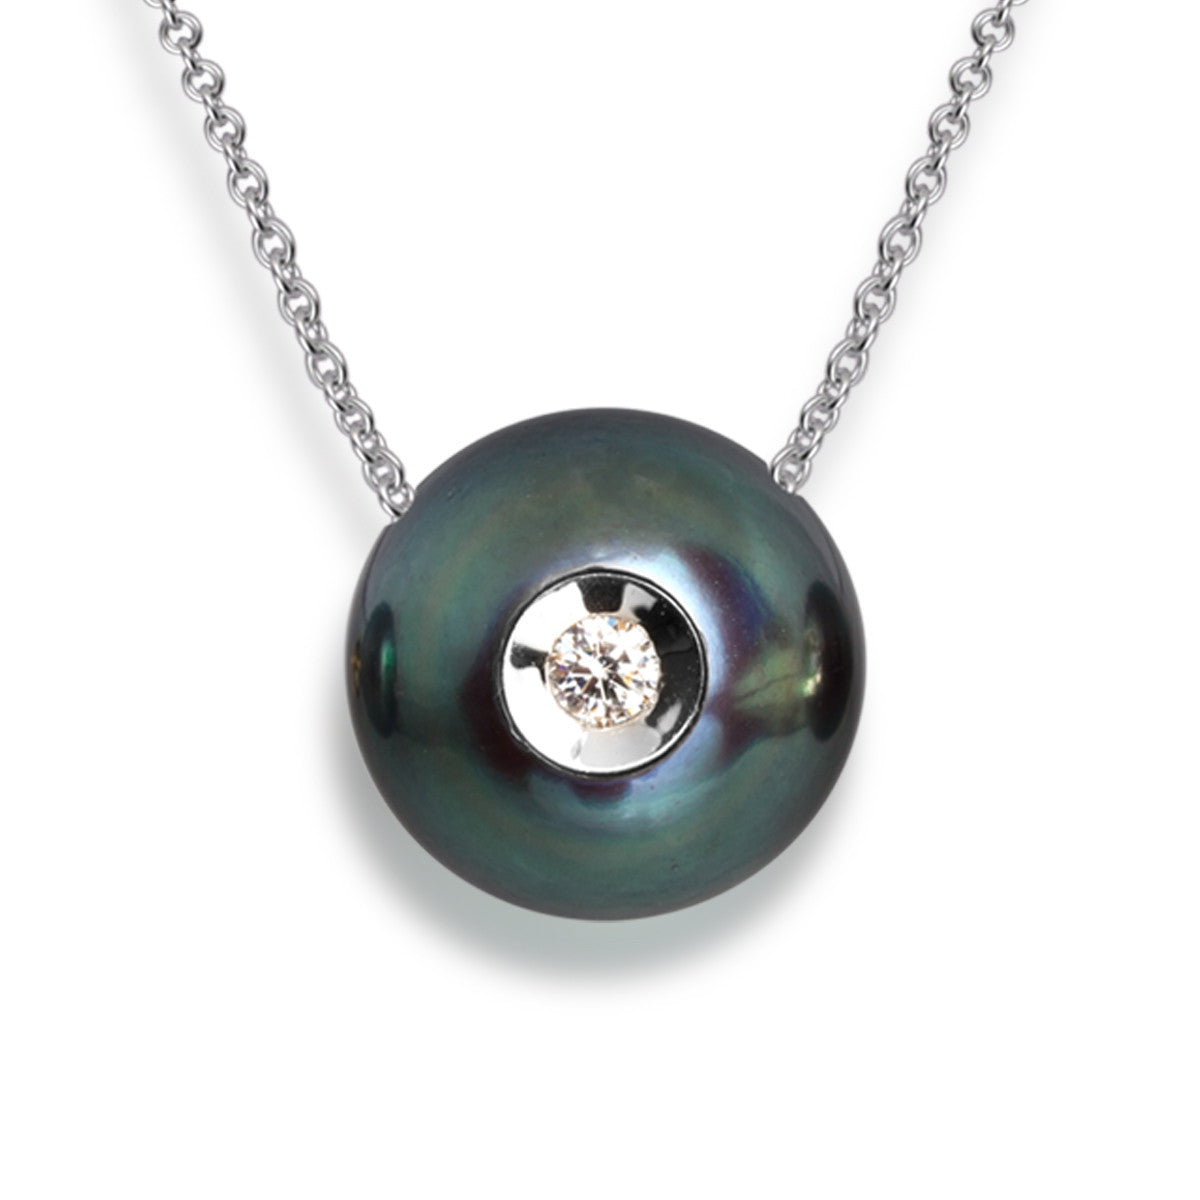 claudetteworters necklace pearl pendant silver original worters swarovski product tahitian in black by claudette